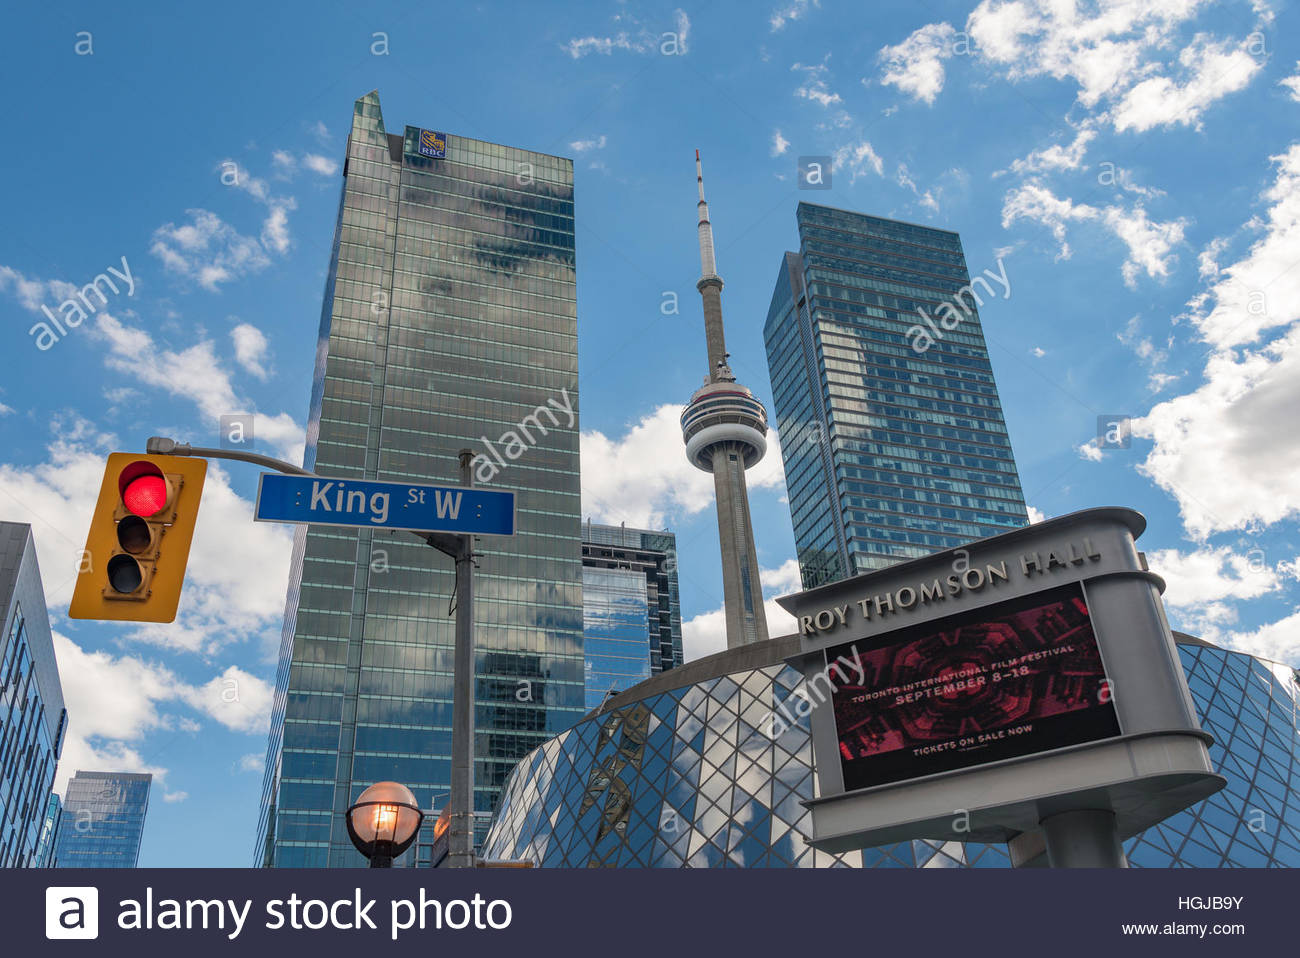 King Of West Stock Photos & King Of West Stock Images - Alamy